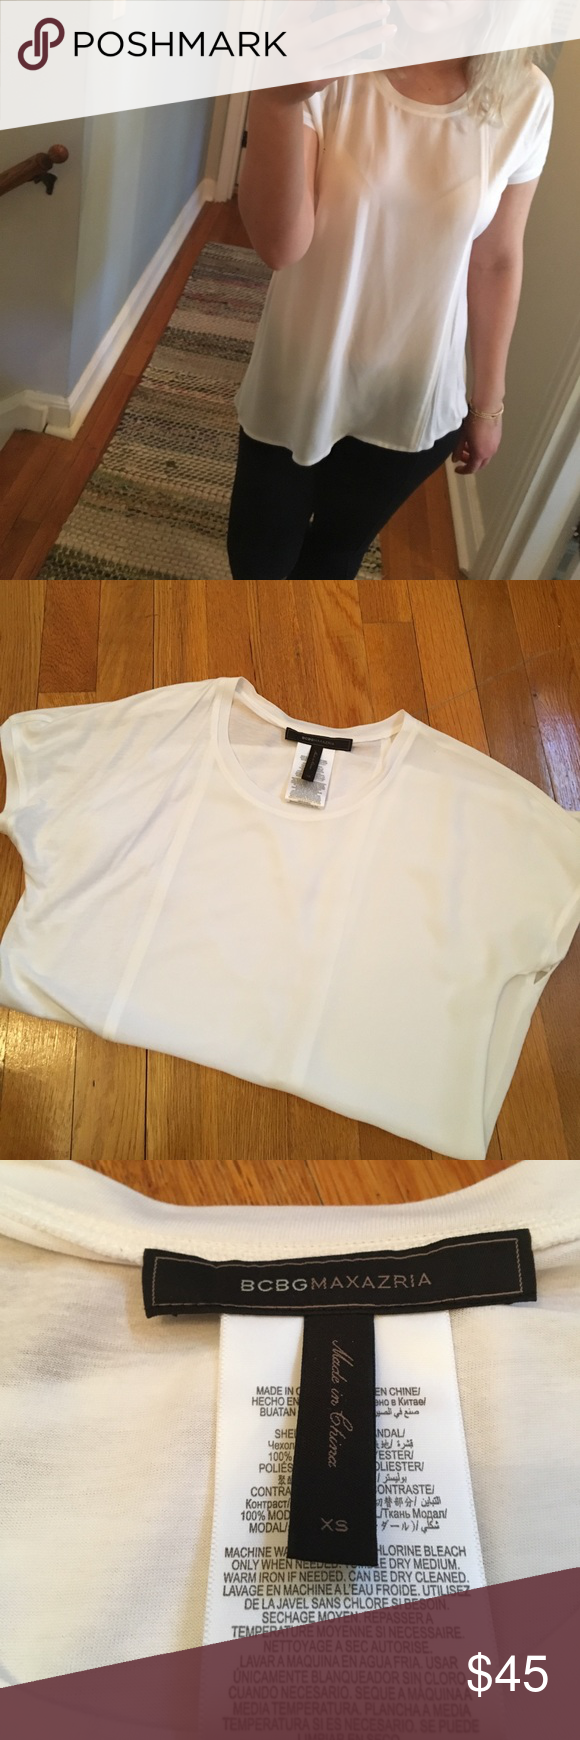 BCBG asymmetrical tee BCBG asymmetrical white tee. One side is cotton other is silky. Can be easily dressed up with pumps. Tags are off but never worn. BCBGMaxAzria Tops Tees - Short Sleeve